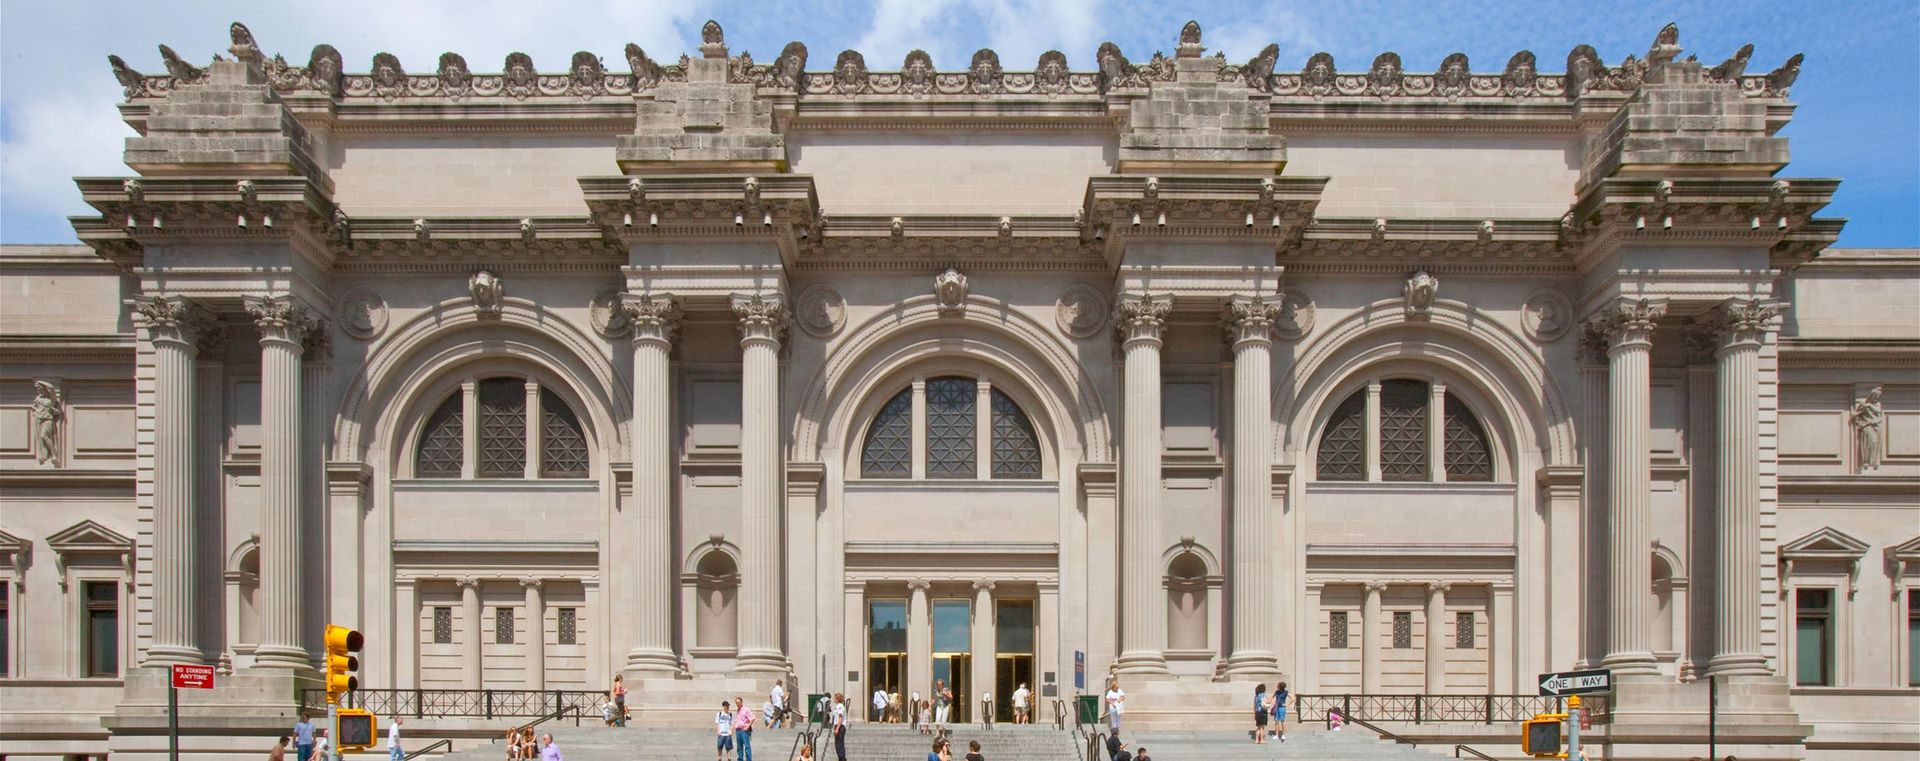 The Metropolitan Museum - New York City